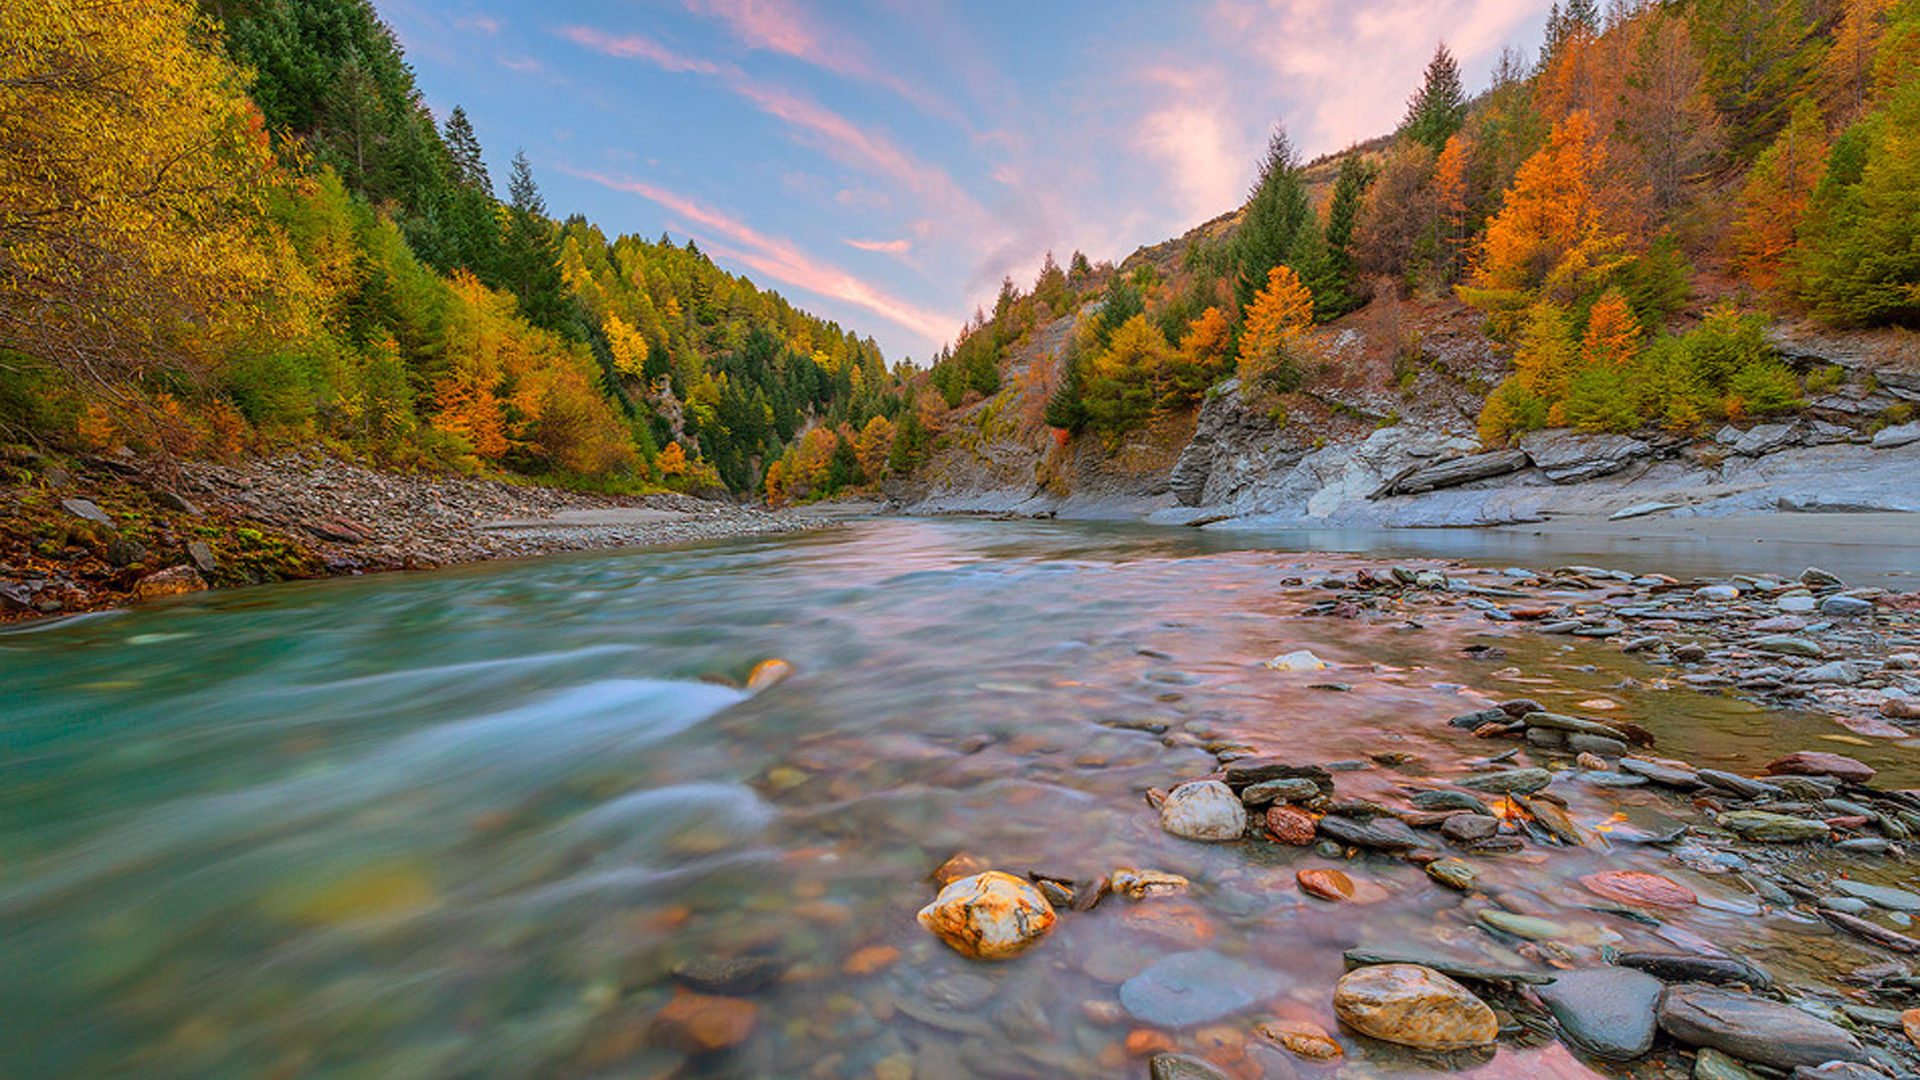 Windows 10 Wallpapers Hd Fall Canyon In Autumn Colors Mountain River Stones Gravel Tree